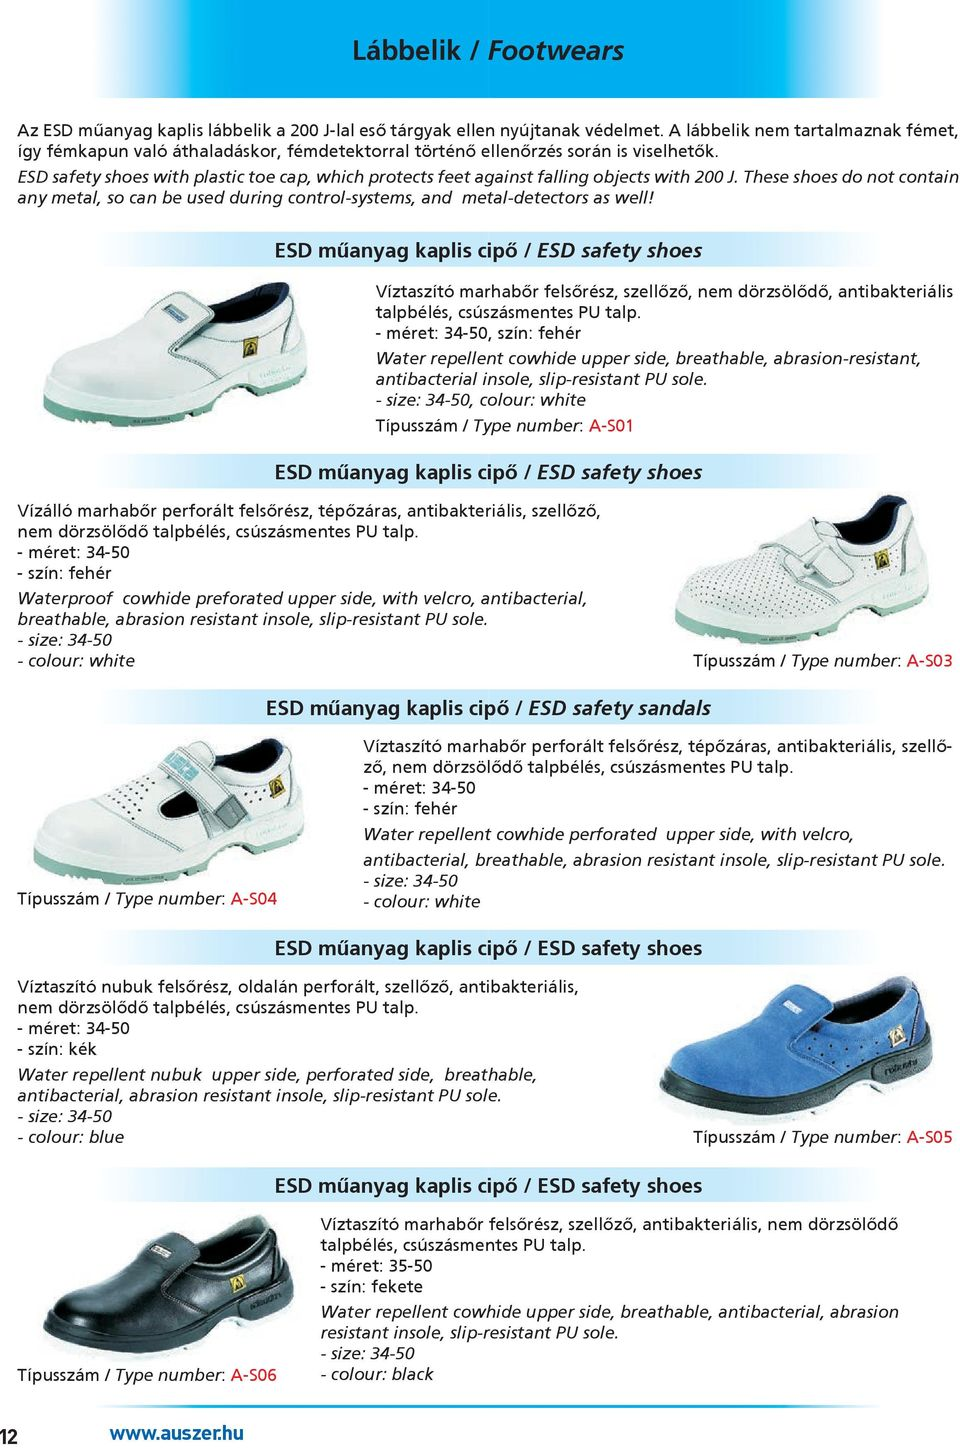 ESD safety shoes with plastic toe cap, which protects feet against falling objects with 200 J. These shoes do not contain any metal, so can be used during control-systems, and metal-detectors as well!